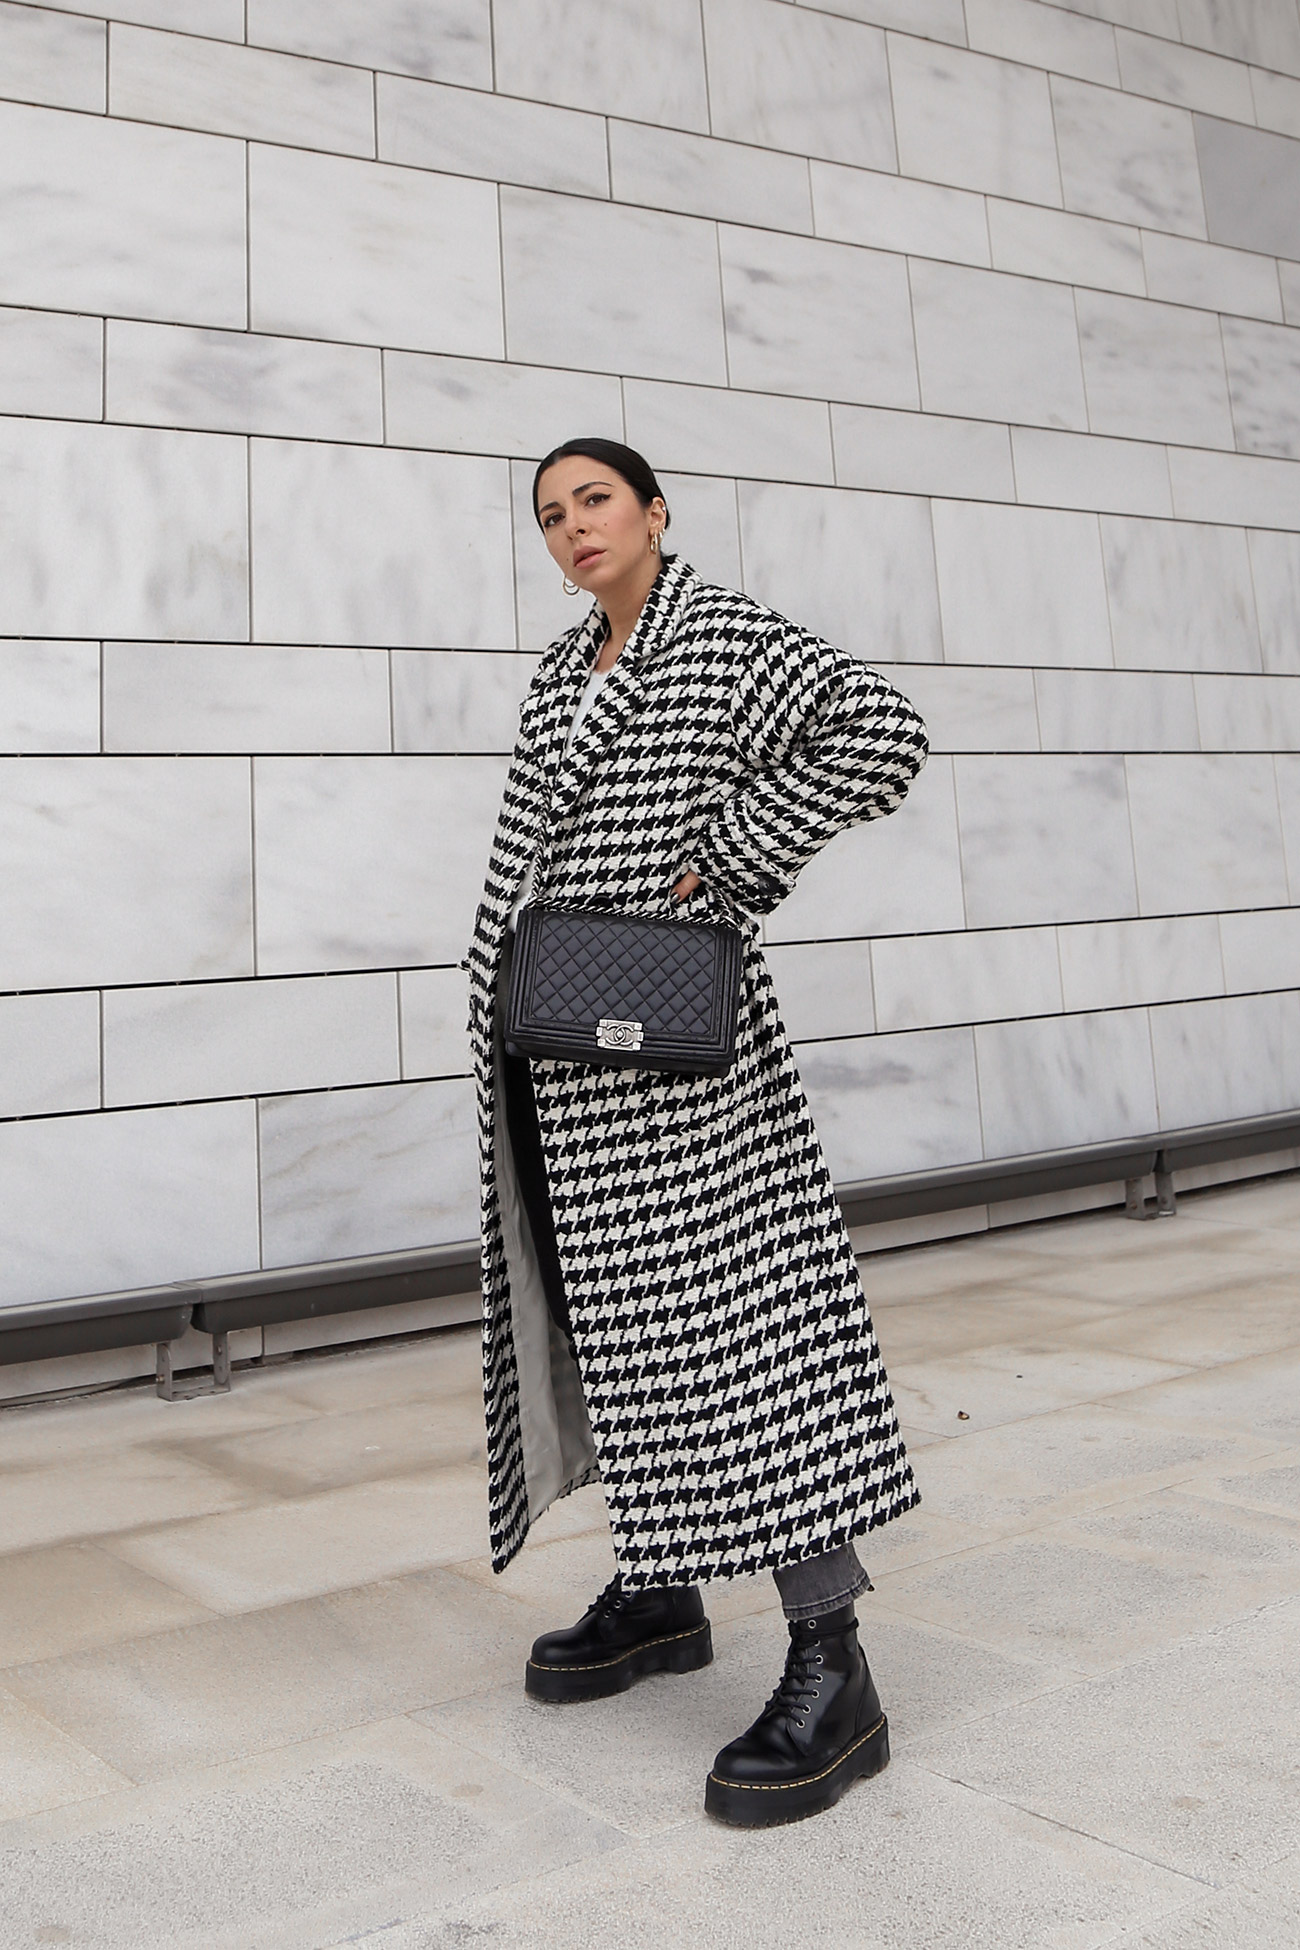 Stella Asteria wearing long black and white houndstooth coat